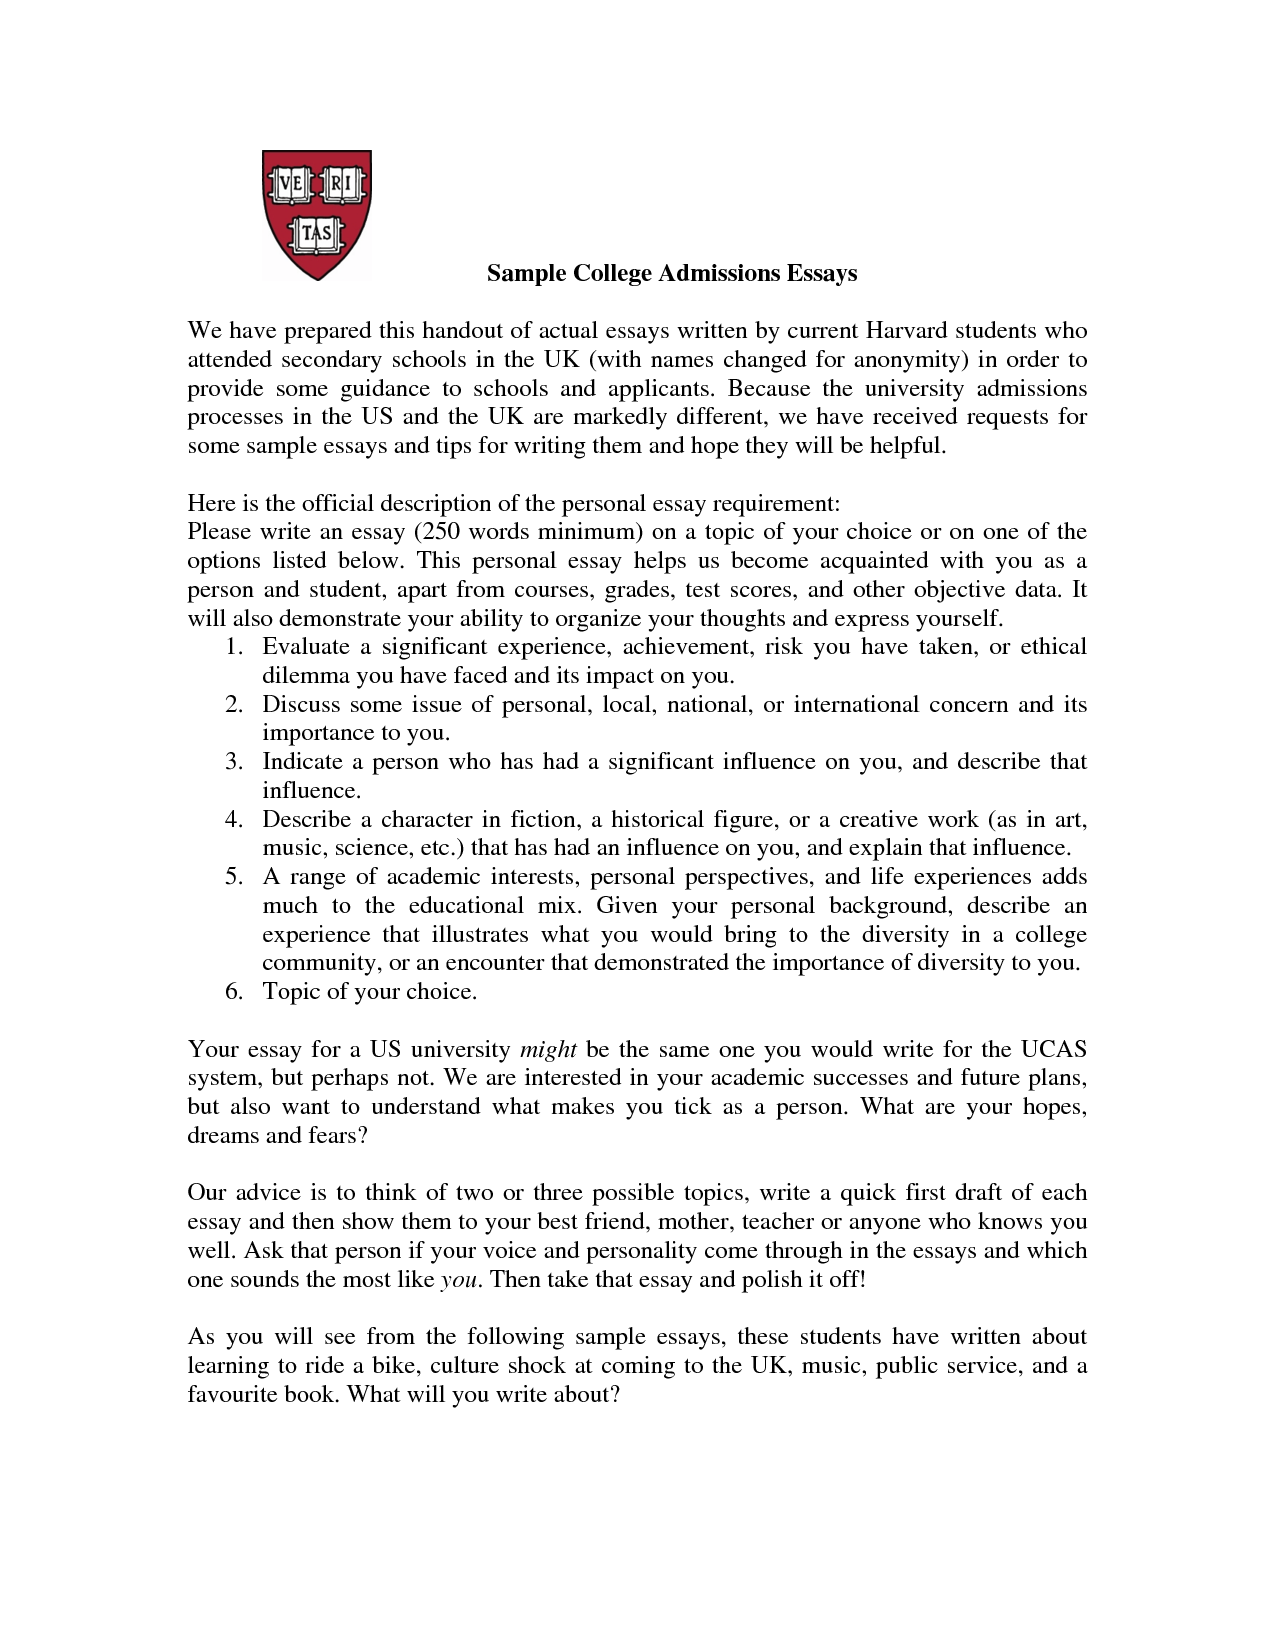 007 How To Write College Entrance Essay Dpy4cpaqnd Striking A Good Introduction For Application Admissions Successful Full